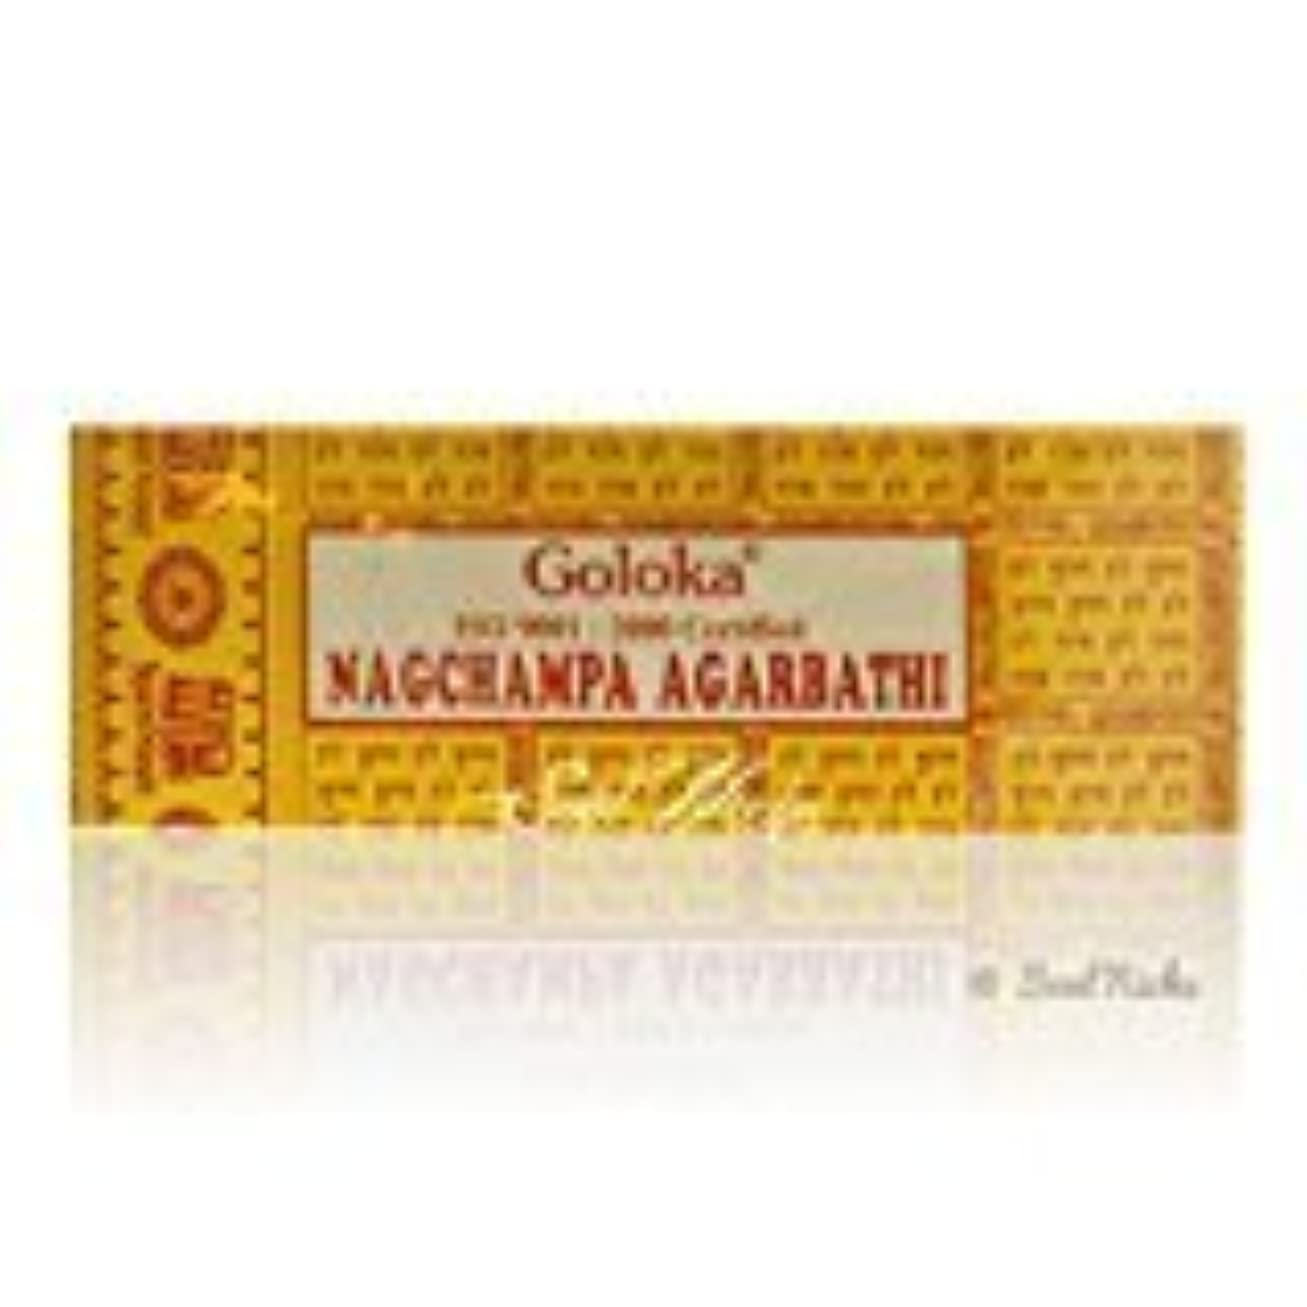 大通り静的ストレンジャー100g Grams Goloka Nag Champa Agarbathi Incense Sticks - High Quality [並行輸入品]